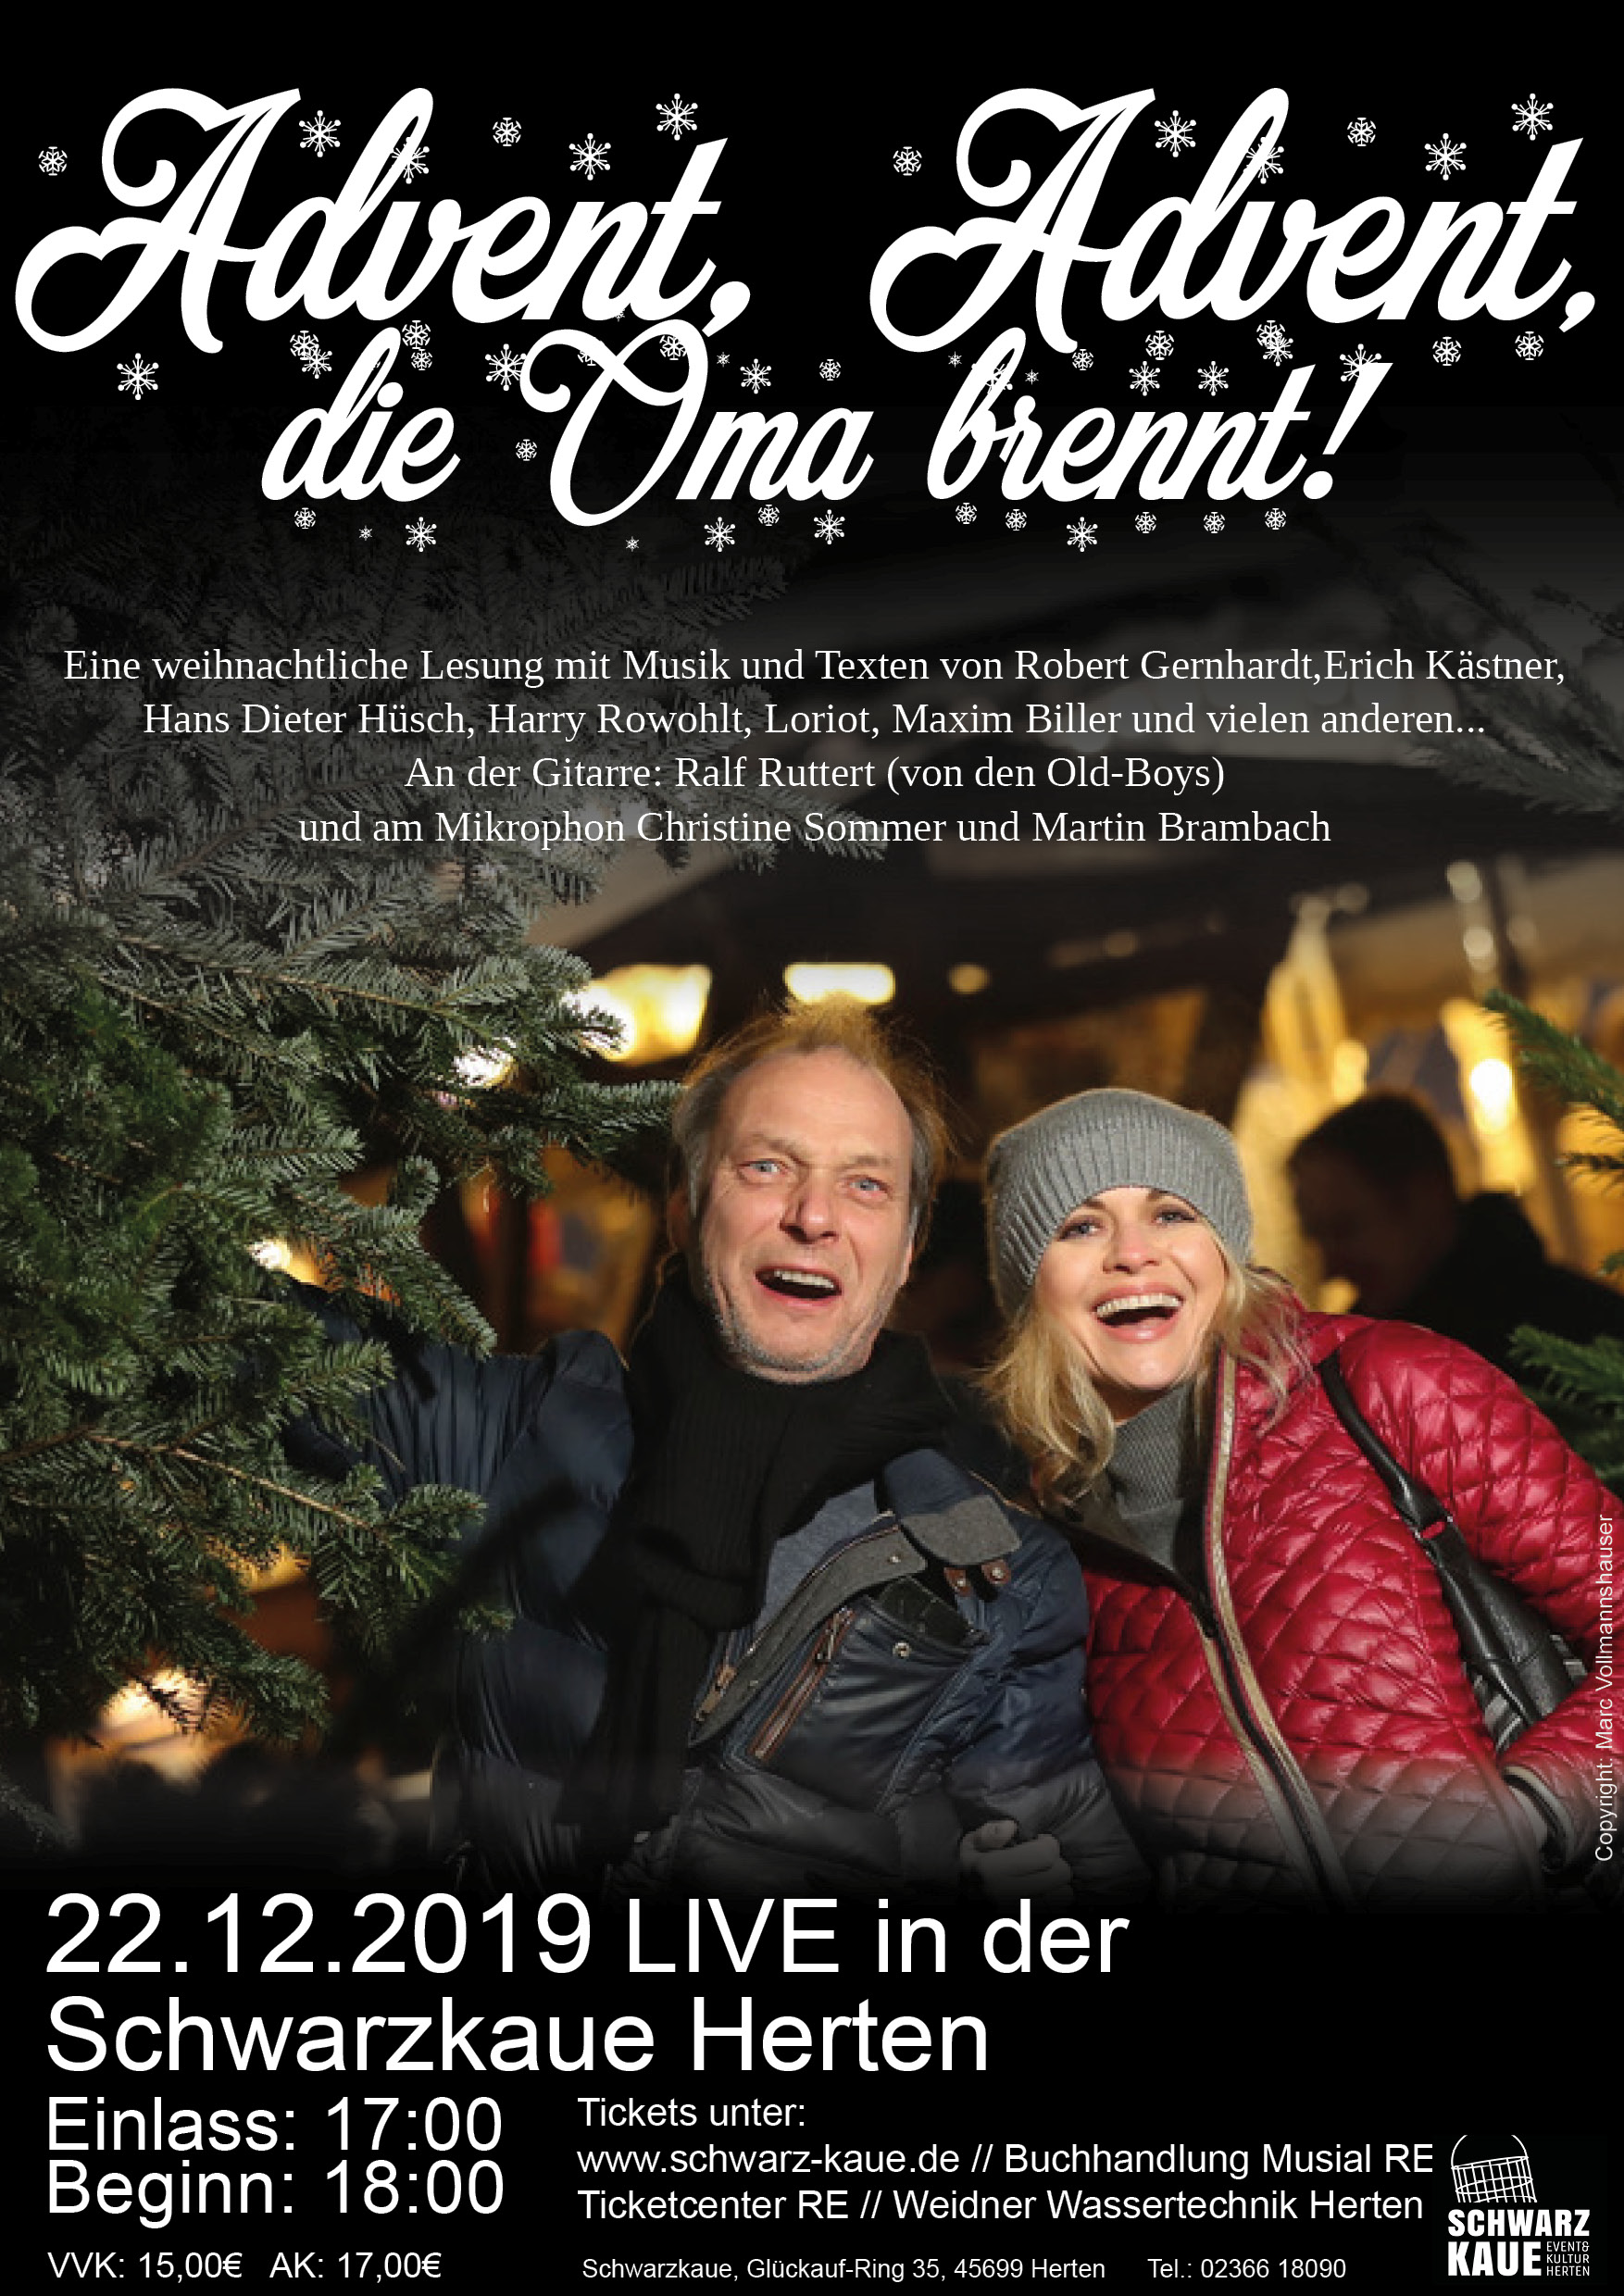 Advent Advent die Oma brennt